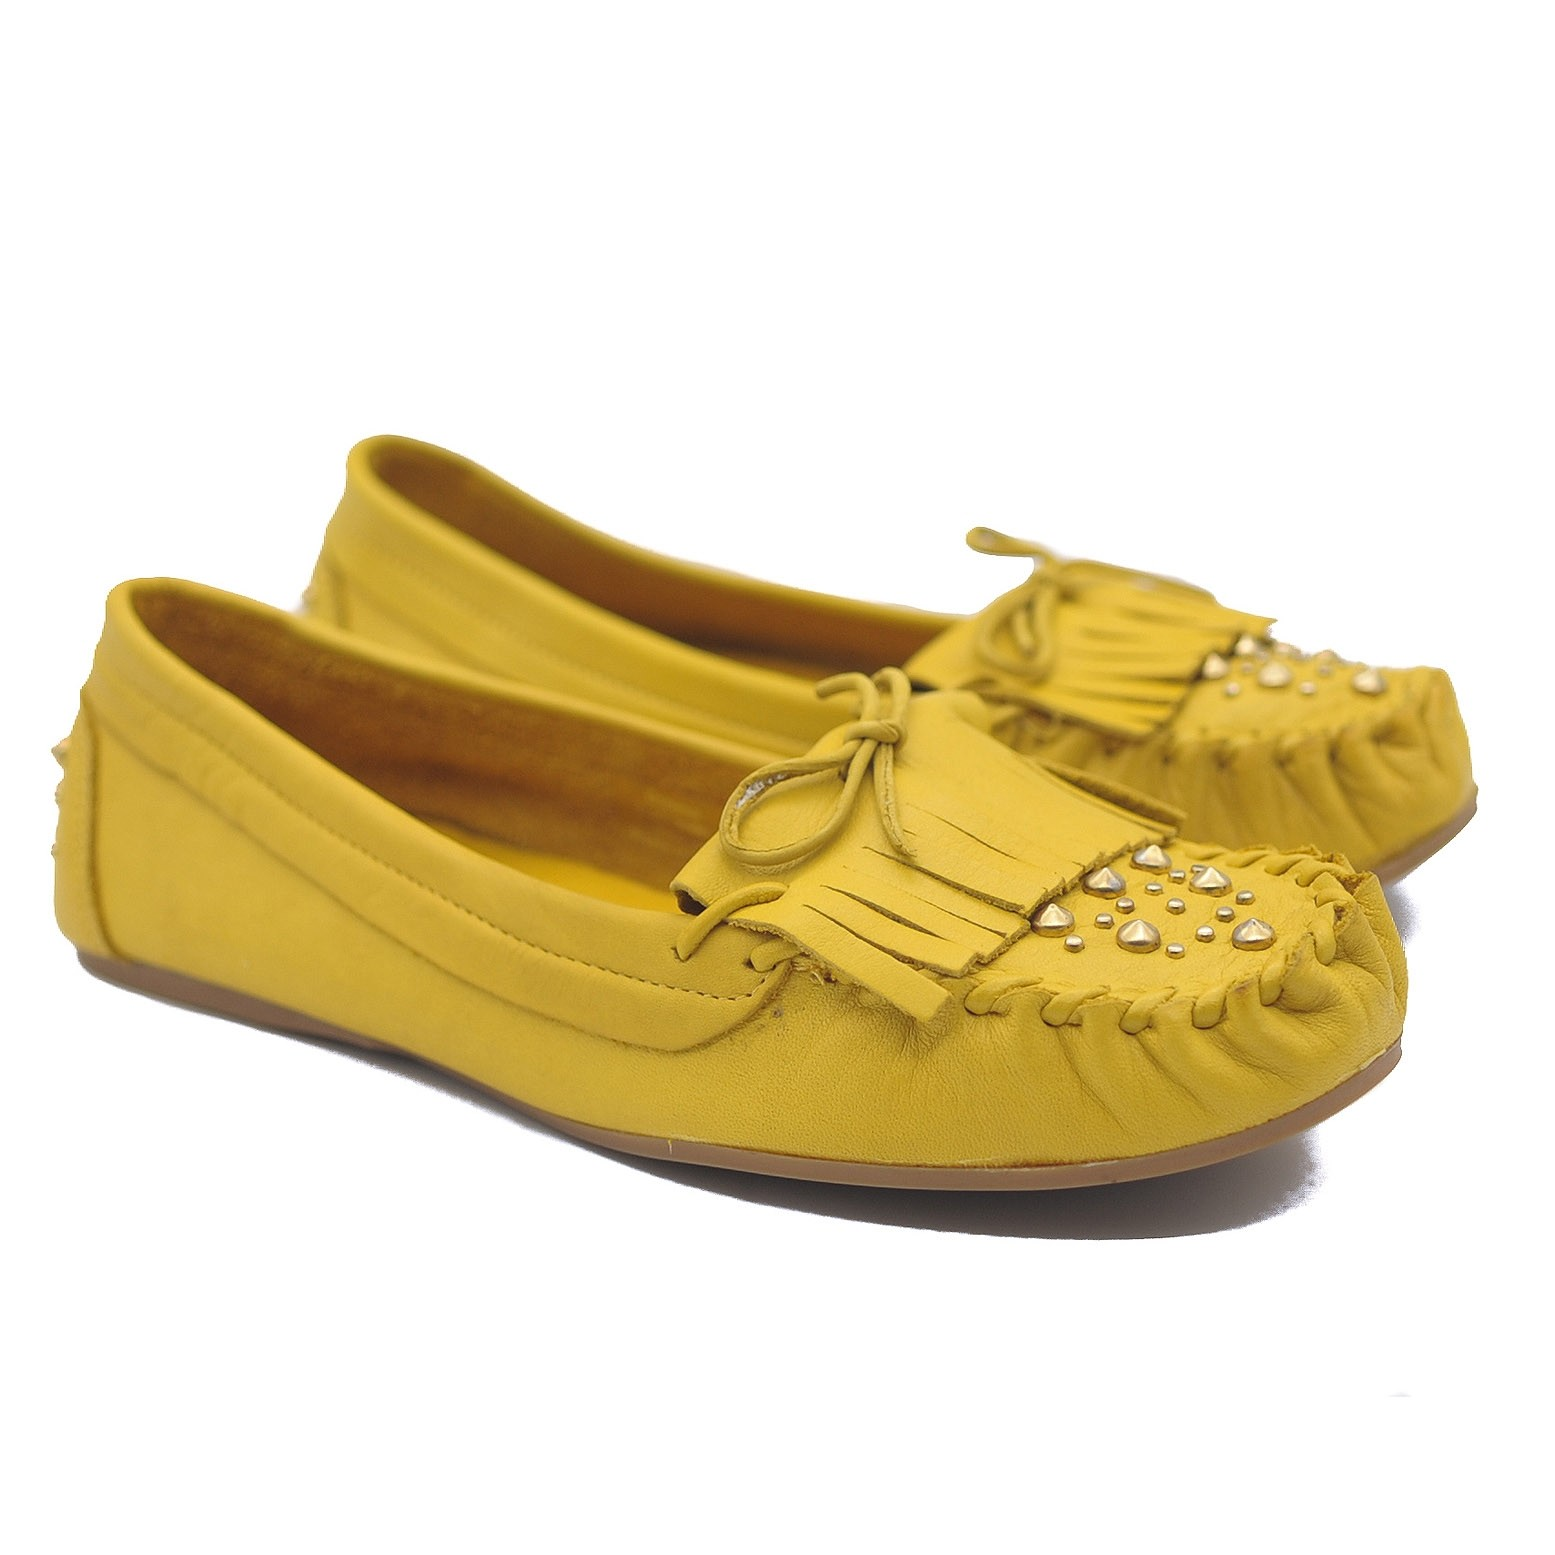 Goody2Shoes Ladies Mustard Yellow Leather Moccasins with Gold Studding